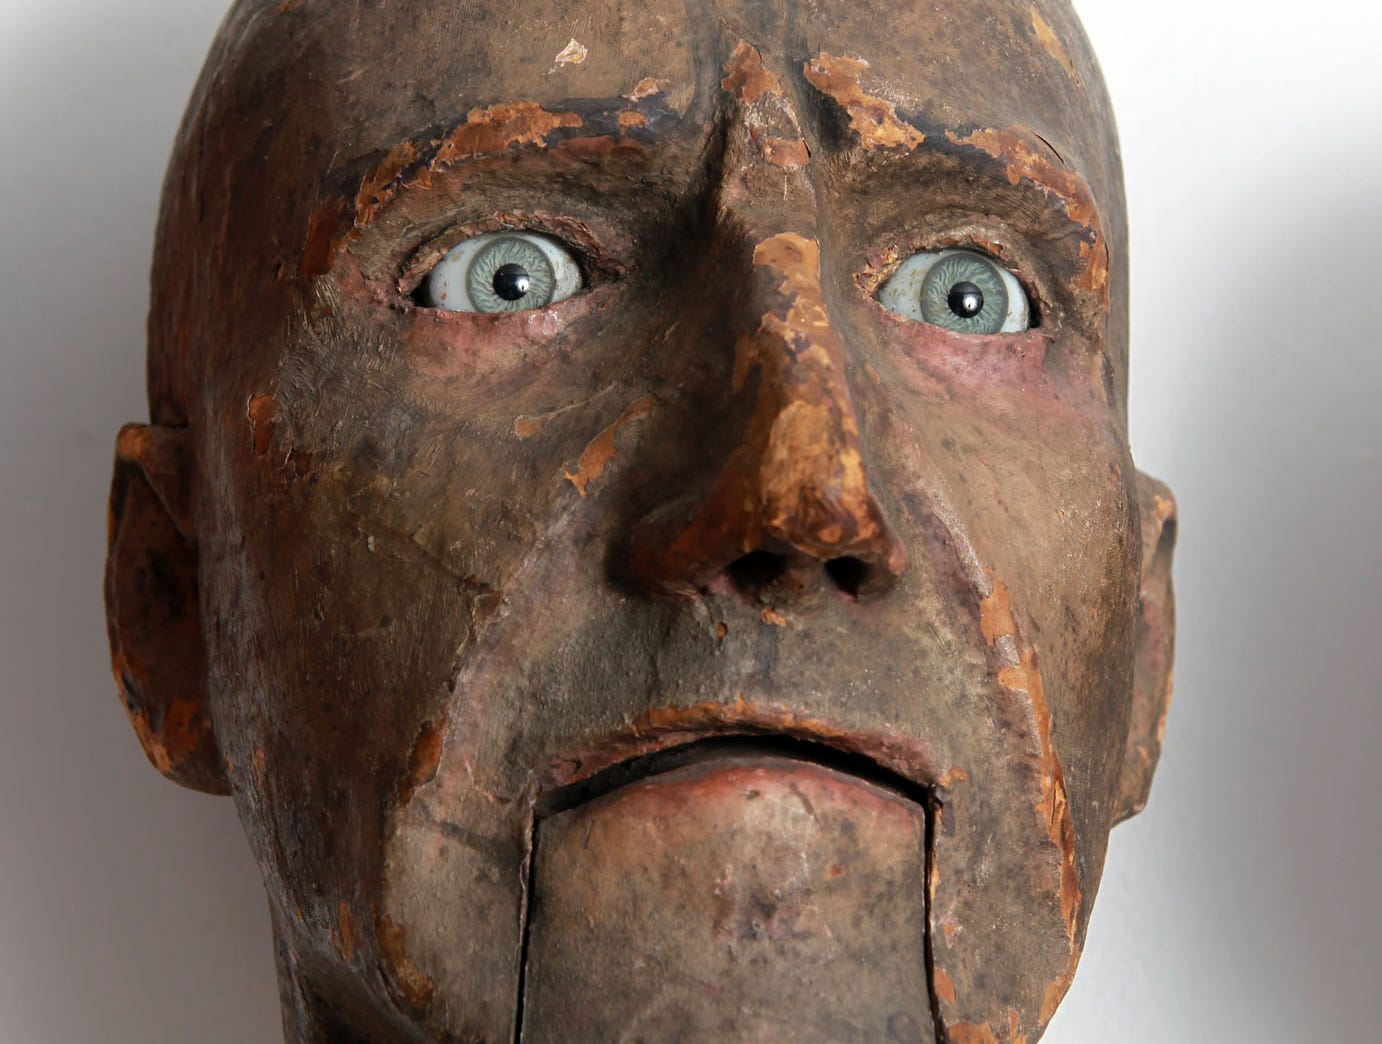 A Goldston Head, made of papier mâché and dating to the 1820s, is one of the museum's oldest pieces. It has glass eyes.